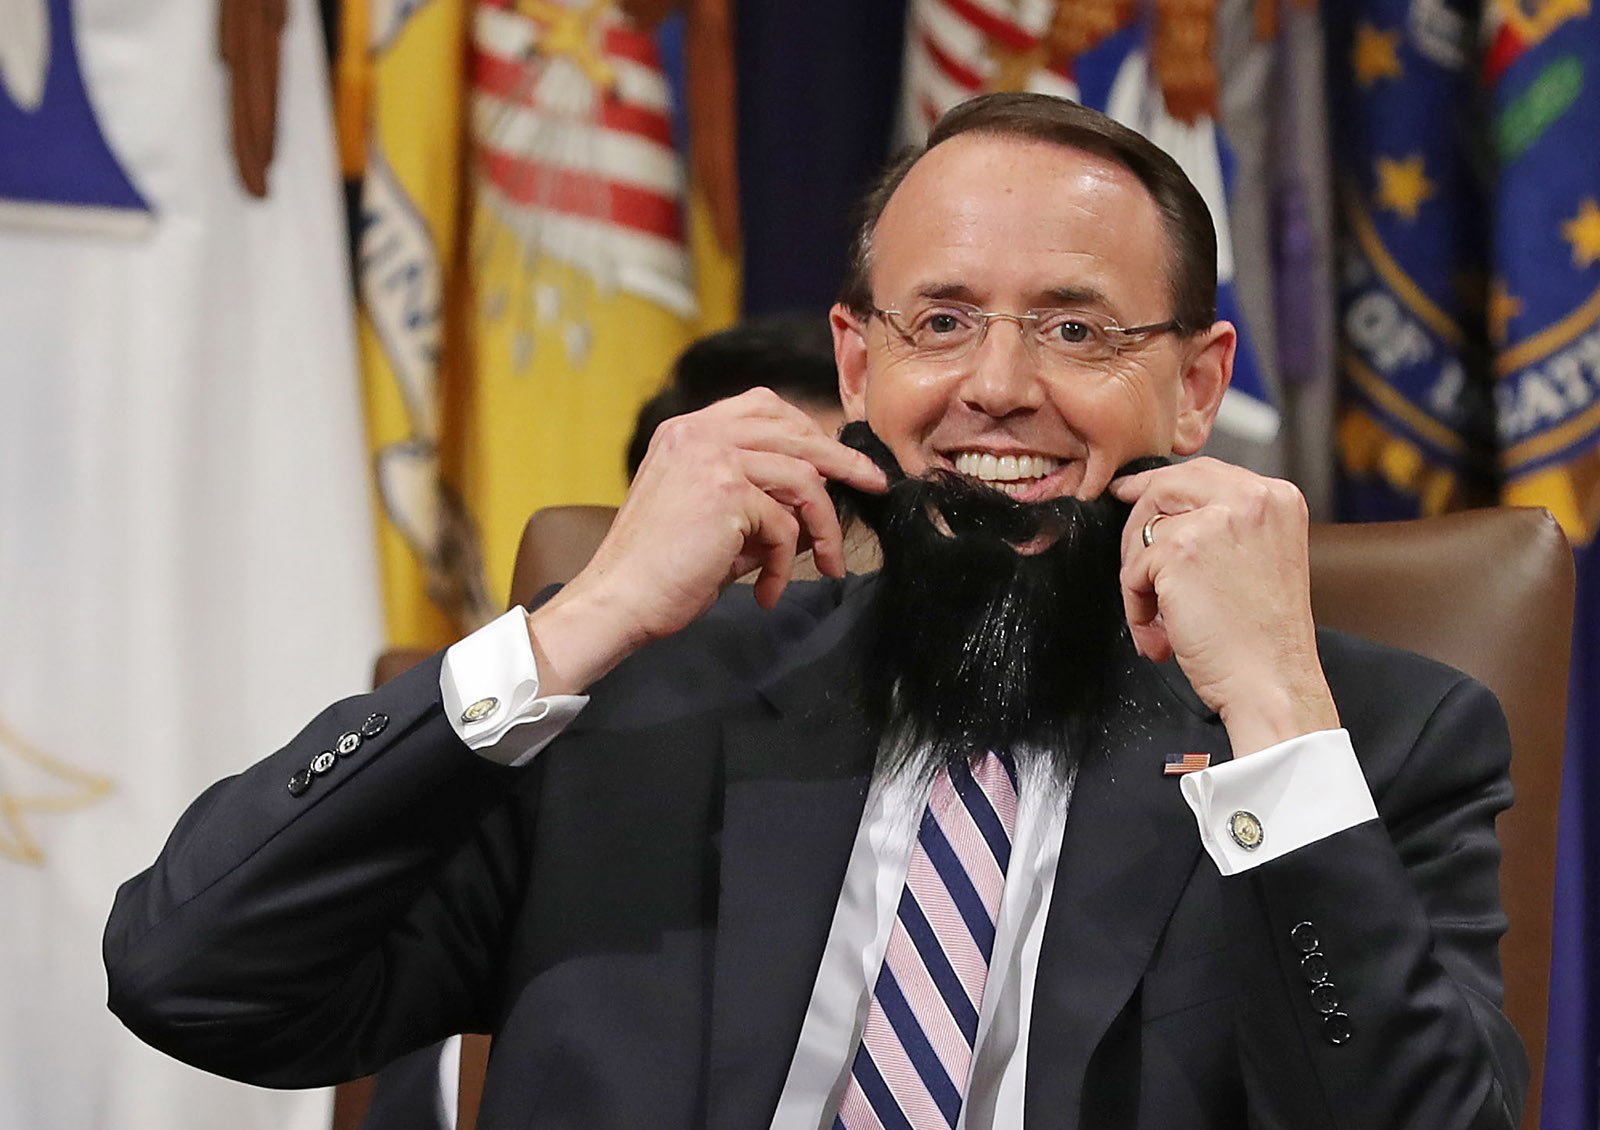 Deputy Attorney General Rod Rosenstein joking with a fake beard donned during his farewell ceremony at the Department of Justice, Washington, D.C., May 9, 2019